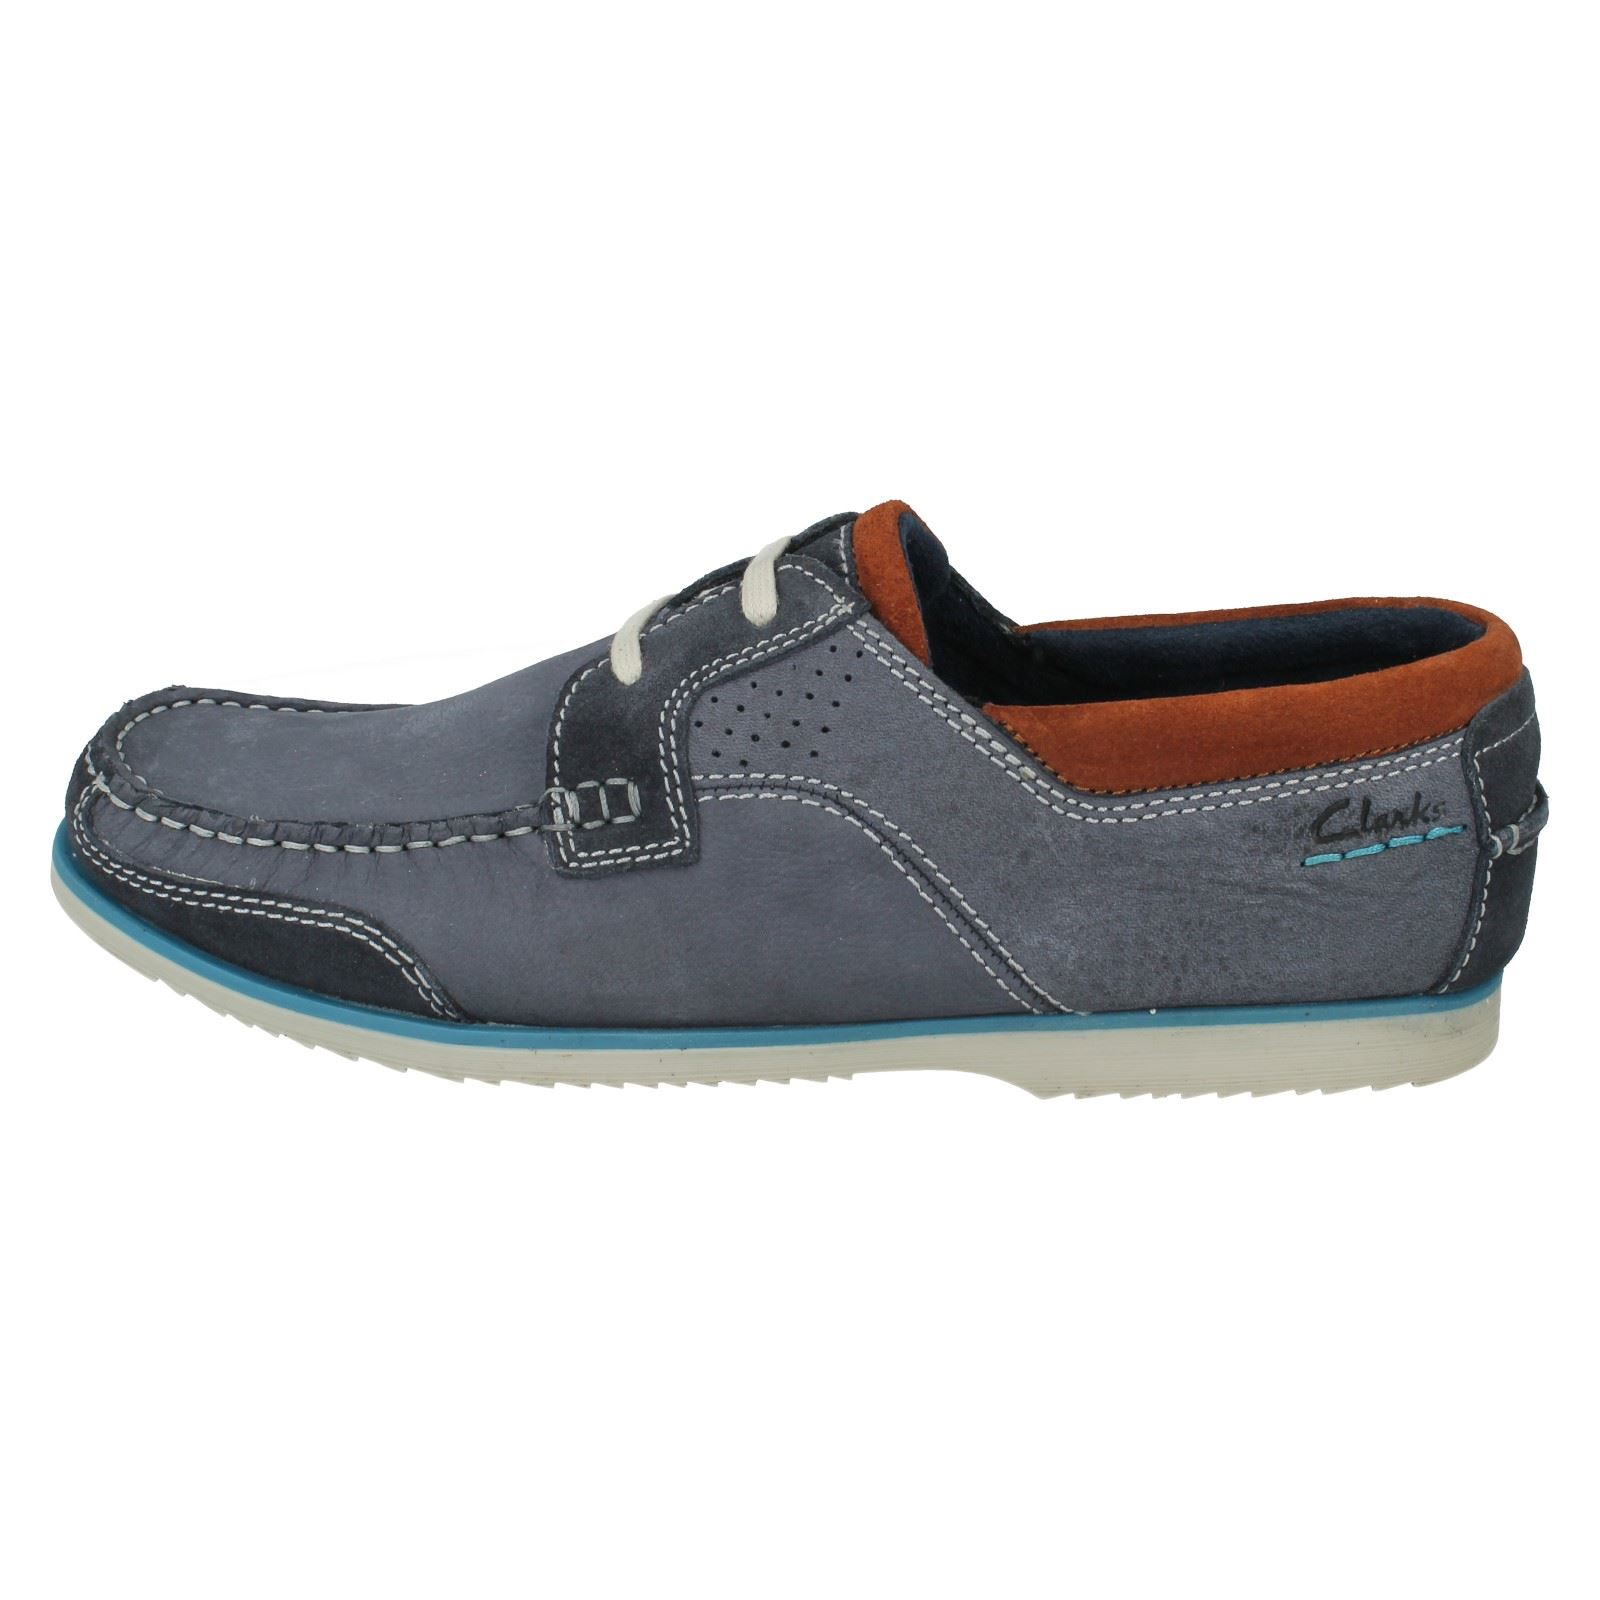 Mens Clarks Boat Shoes Style Kendrick Sail W Ebay